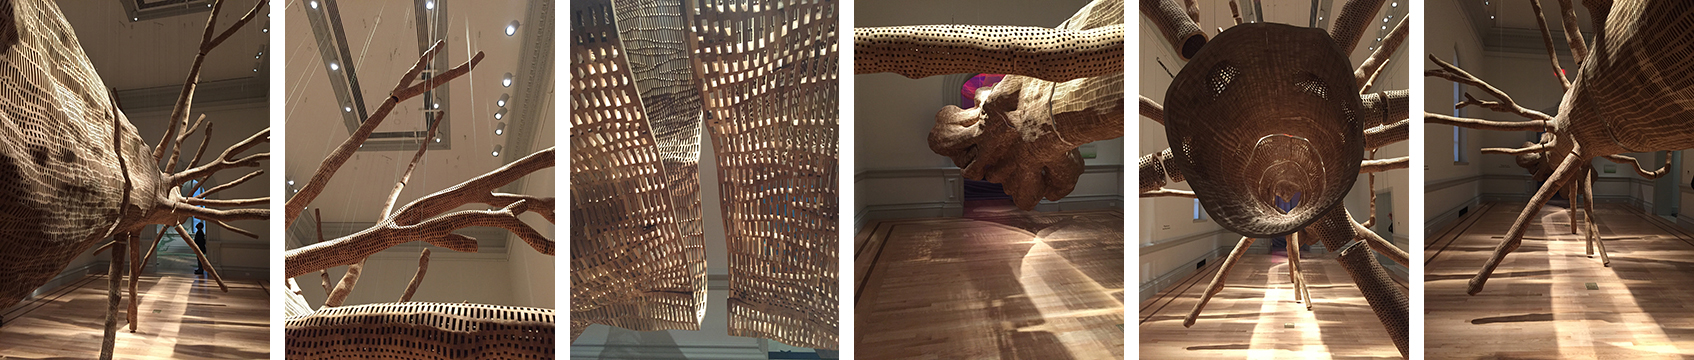 """""""Middle Fork"""", by John Grade, was made by first creating a plaster cast of a tree, found  IN THE CASCADE MOUNTAINS, that is the same age as the Renwick building. Then, a half-million segments of reclaimed cedar were carved and connected to make the new """"tree"""" from the cast. Amazing!"""